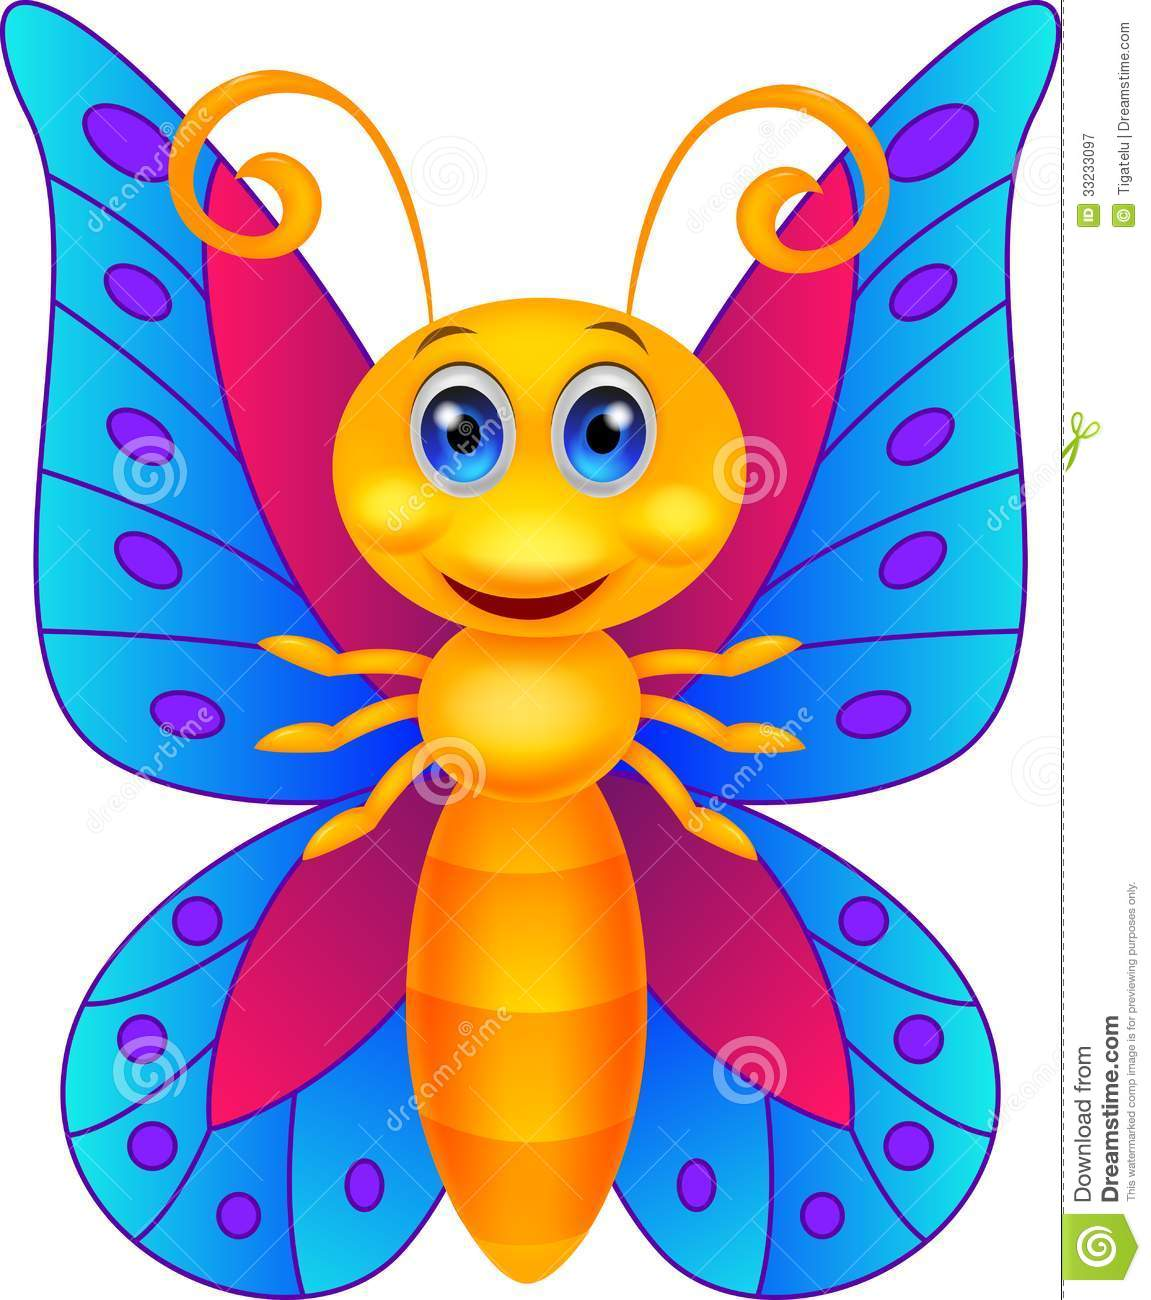 Funny Butterfly Cartoon Royalty Free Stock Photography - Image ...